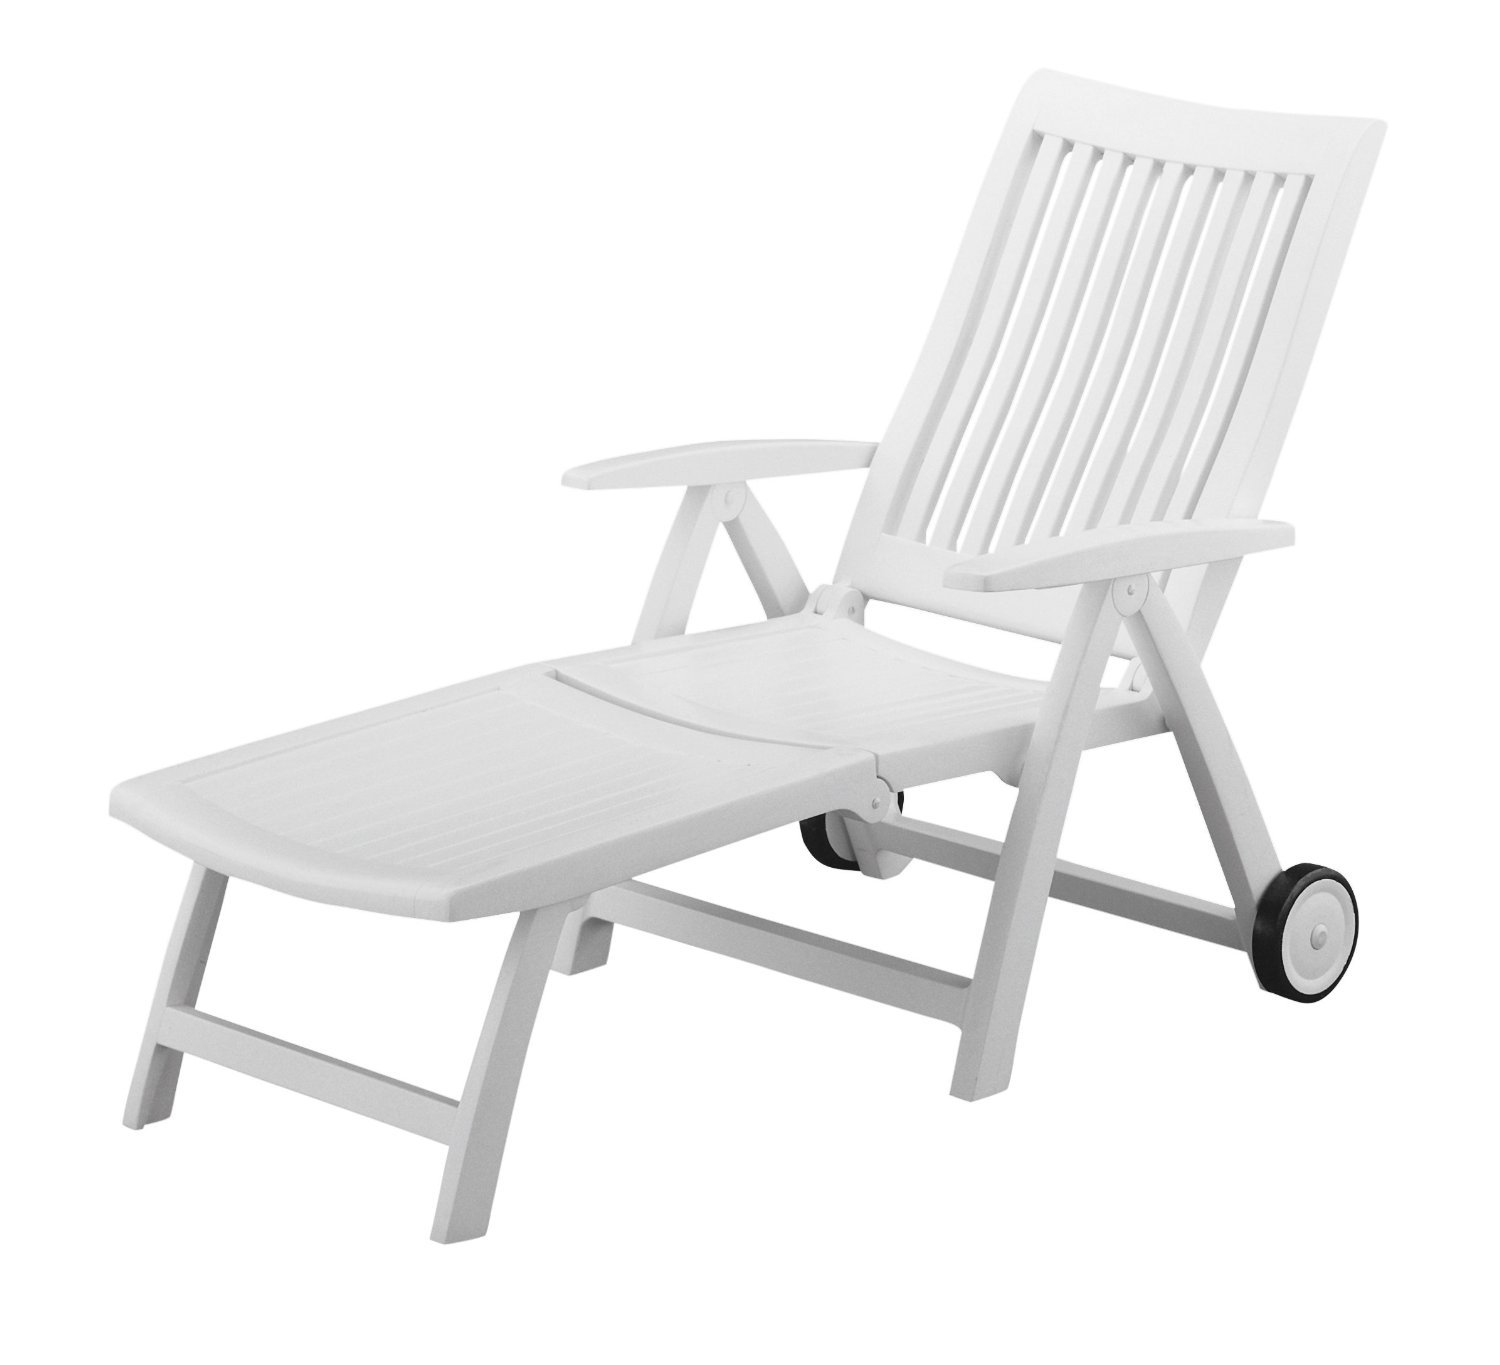 KETTLER Roma Folding Lounger in White Resin by KETTLER